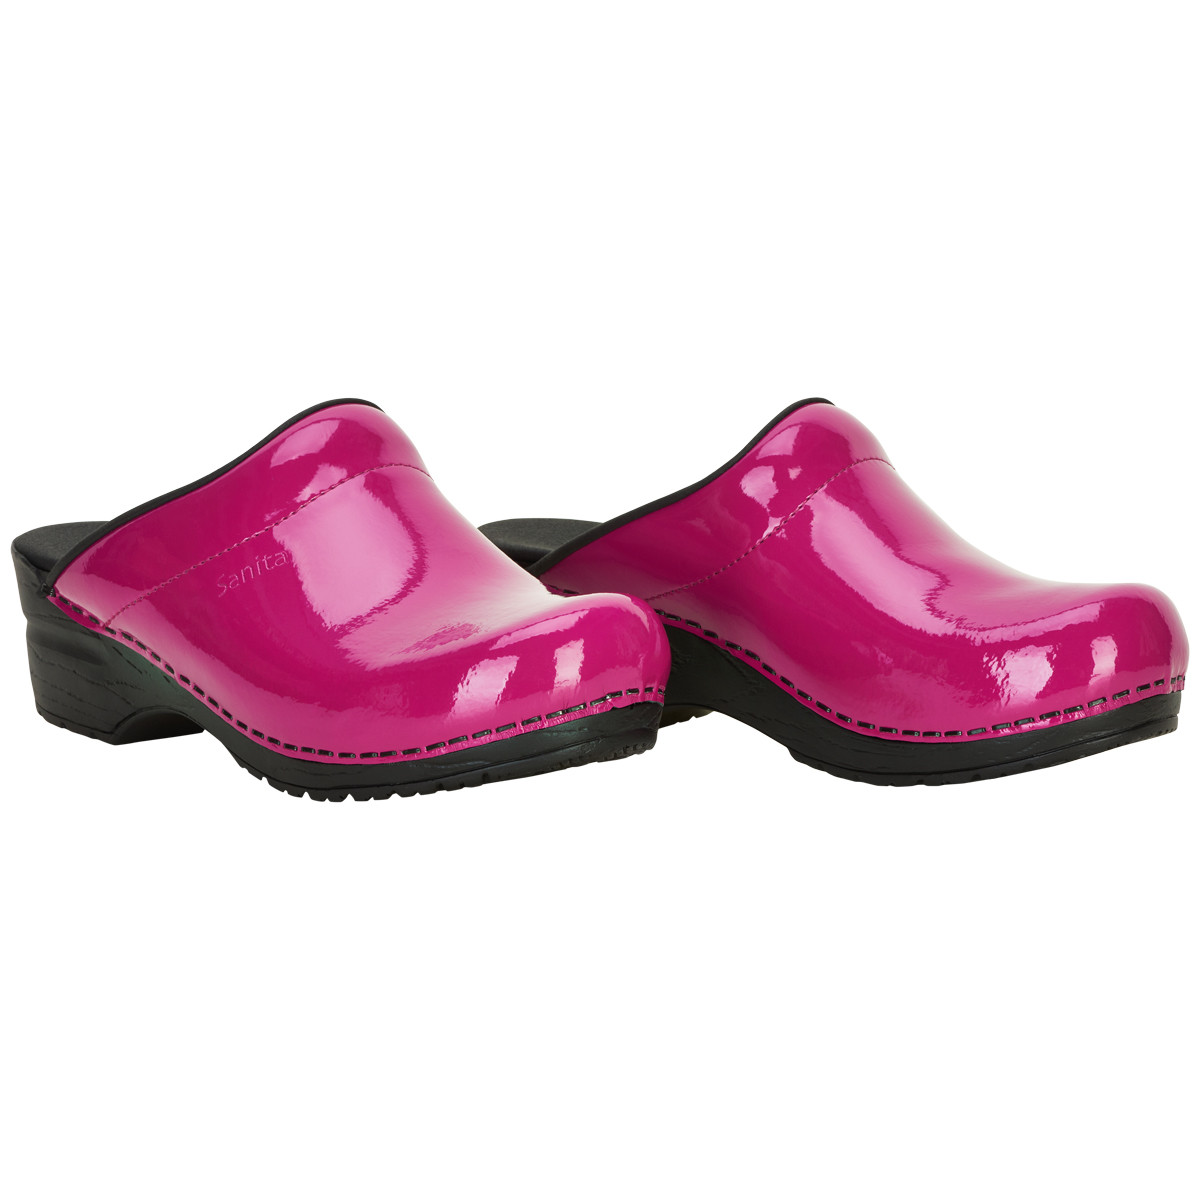 Sanita Original Sonja Patent Clogs 450447 79